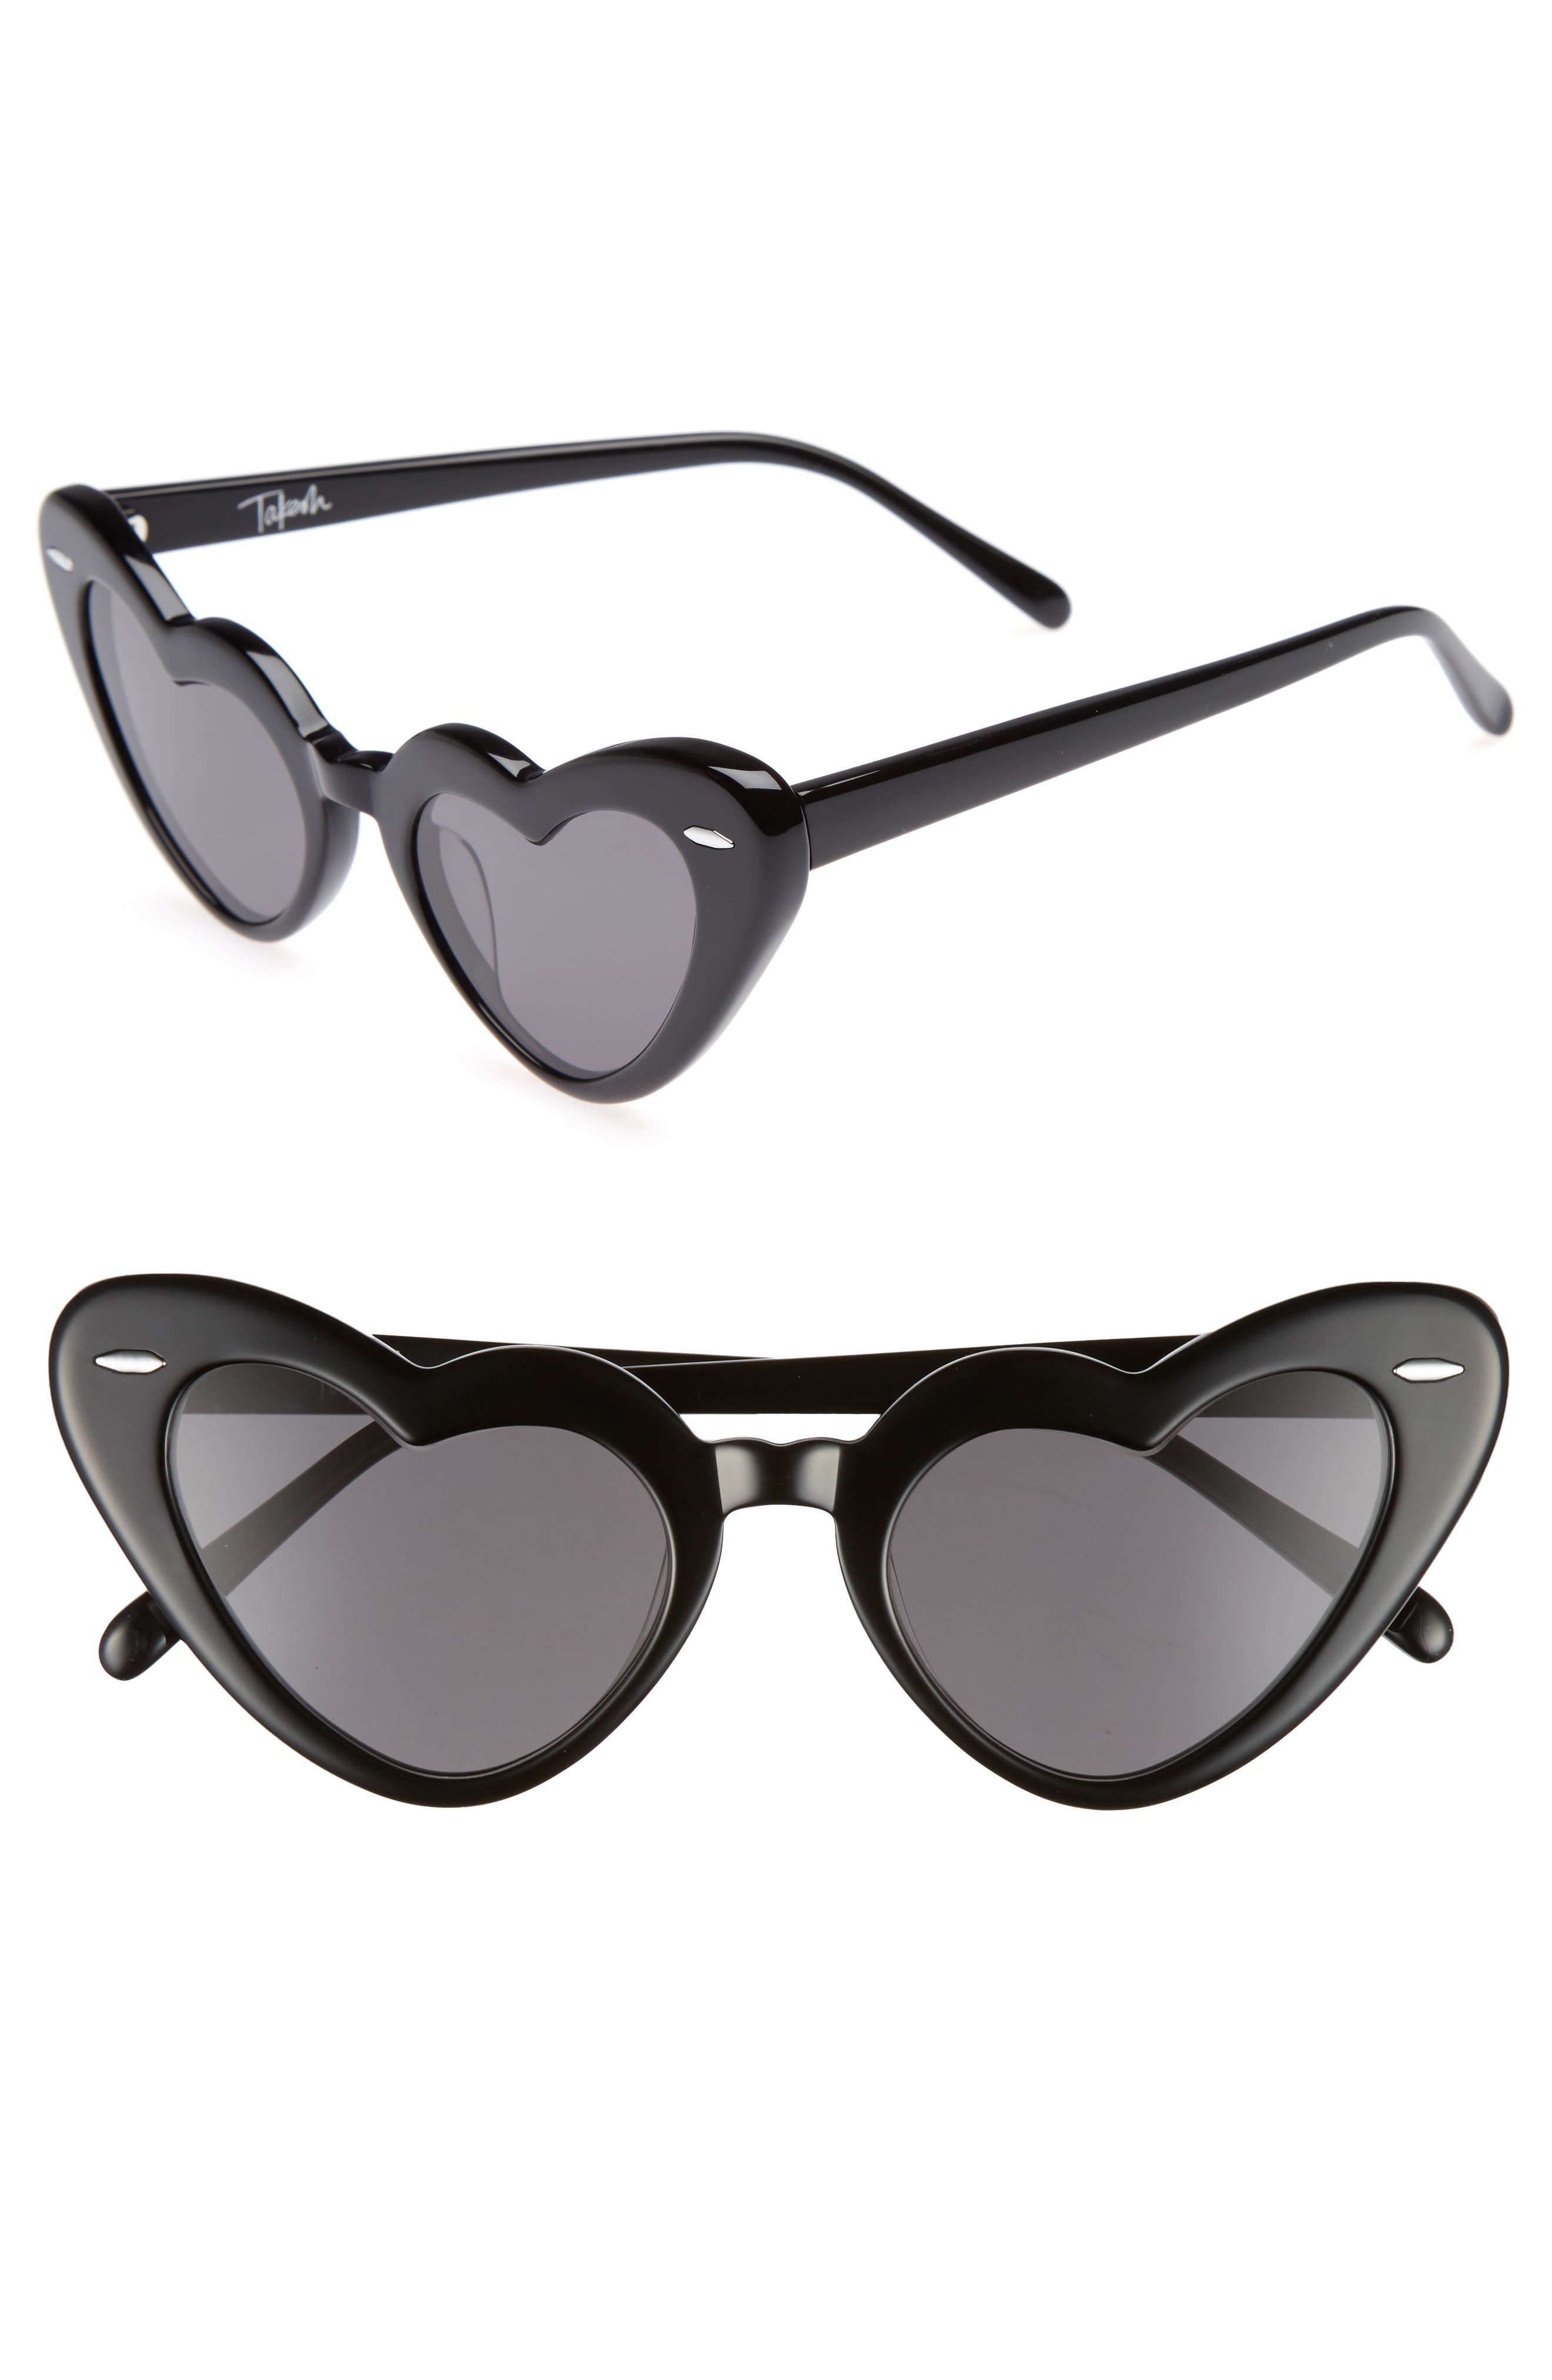 Takesh J'adore 46mm Heart Sunglasses